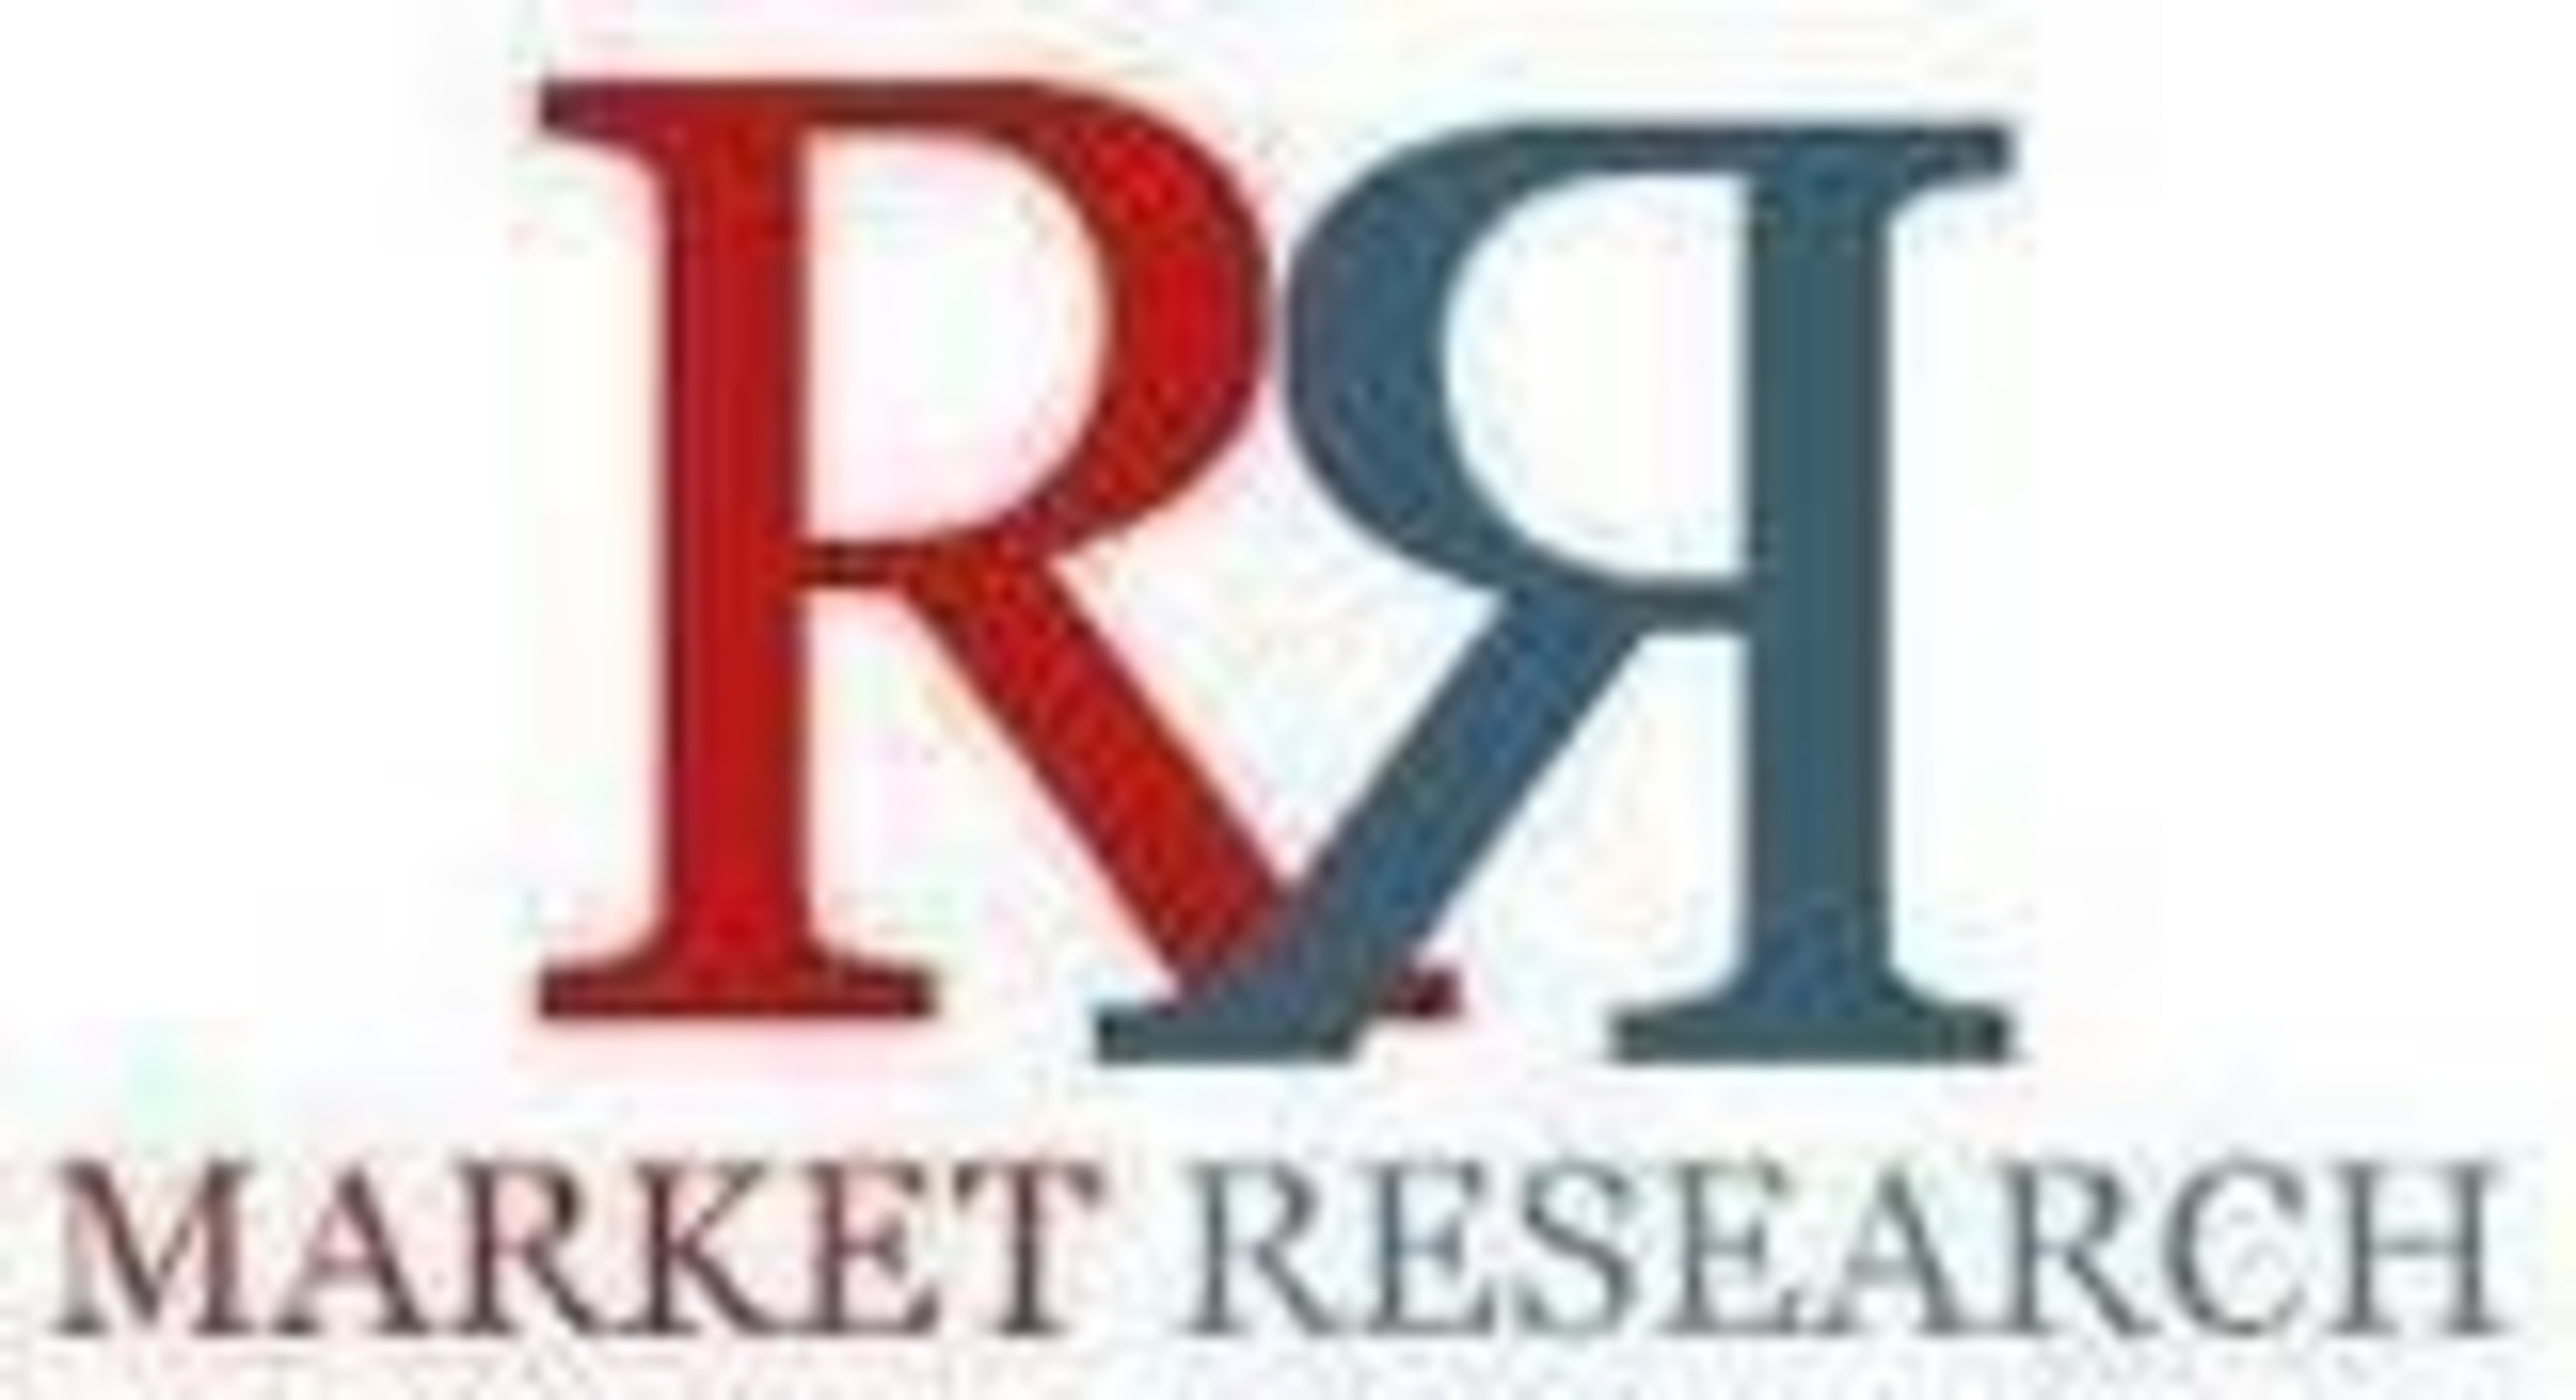 Learning Management System Market (LMS) Led by Digital Learning Hit at 24.7% CAGR and $15.72 Billion by 2021